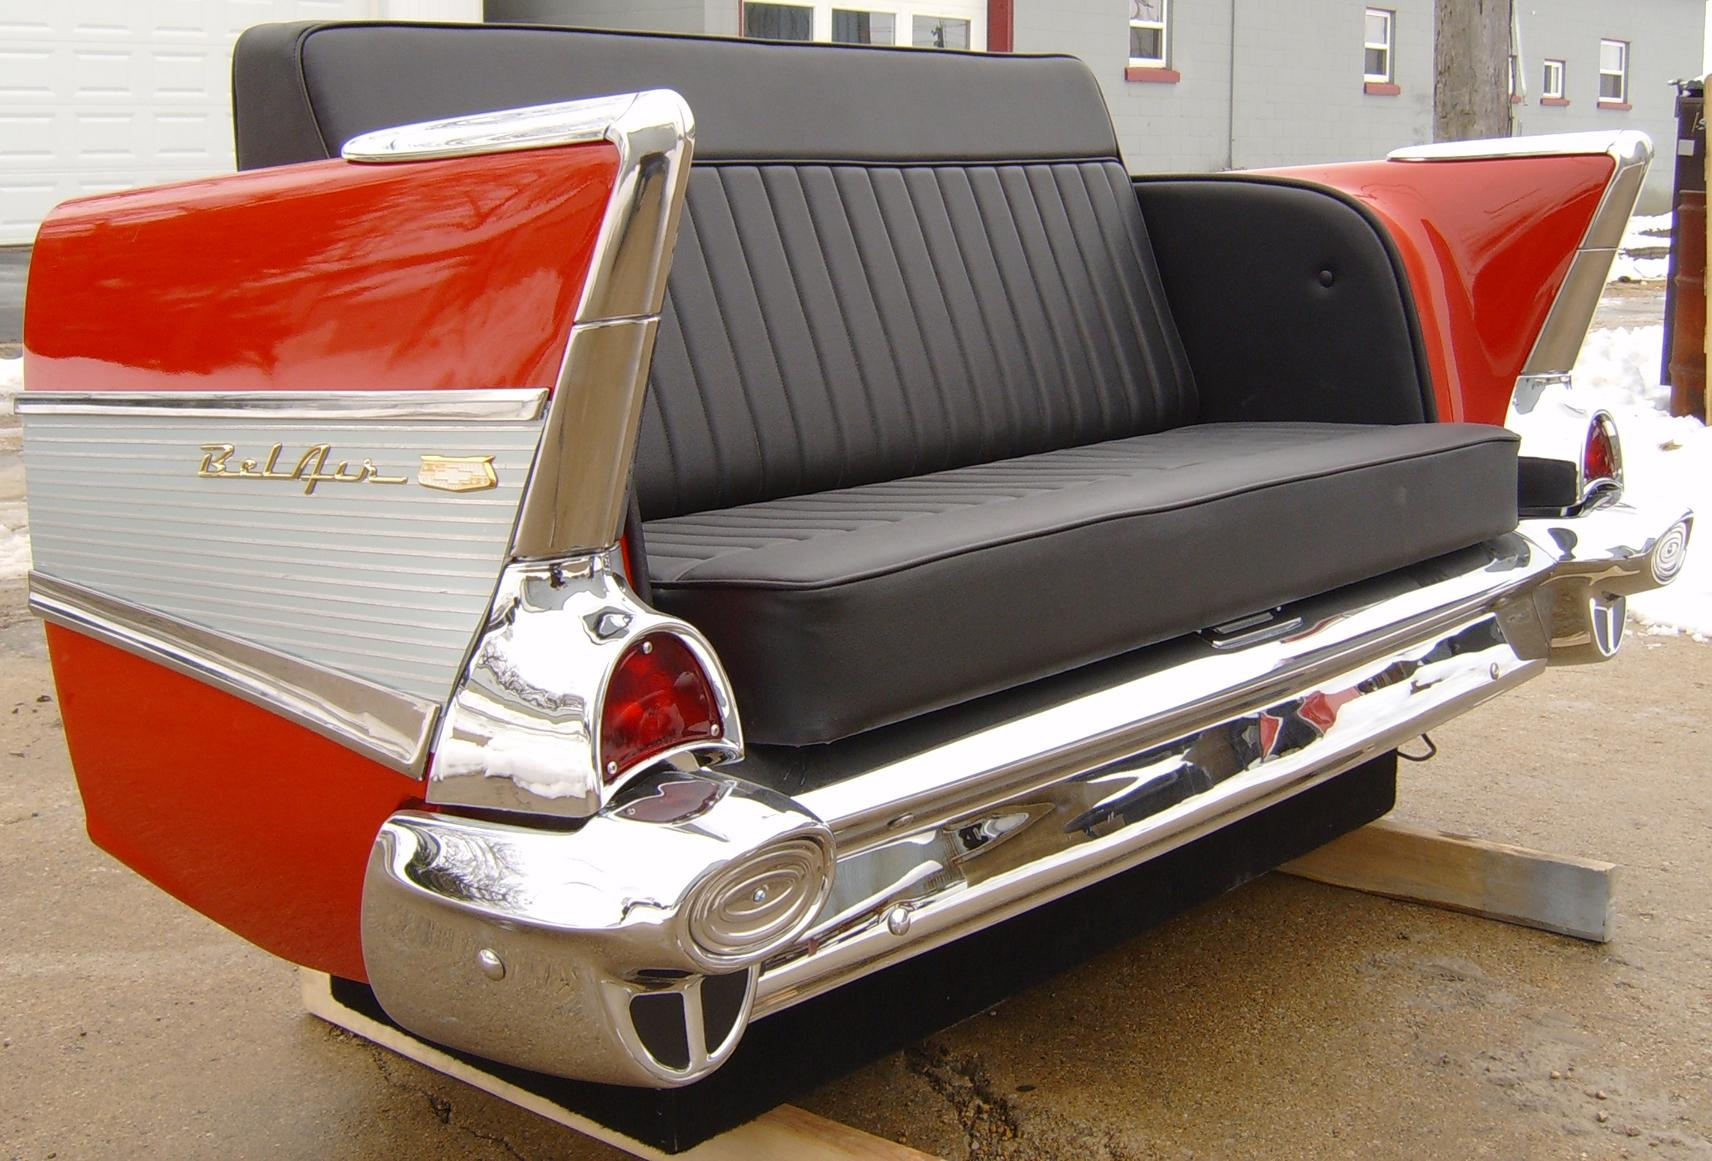 New Retro Cars : Restored Classic Car Furniture And Decor Within Classic Sofas For Sale (View 17 of 20)